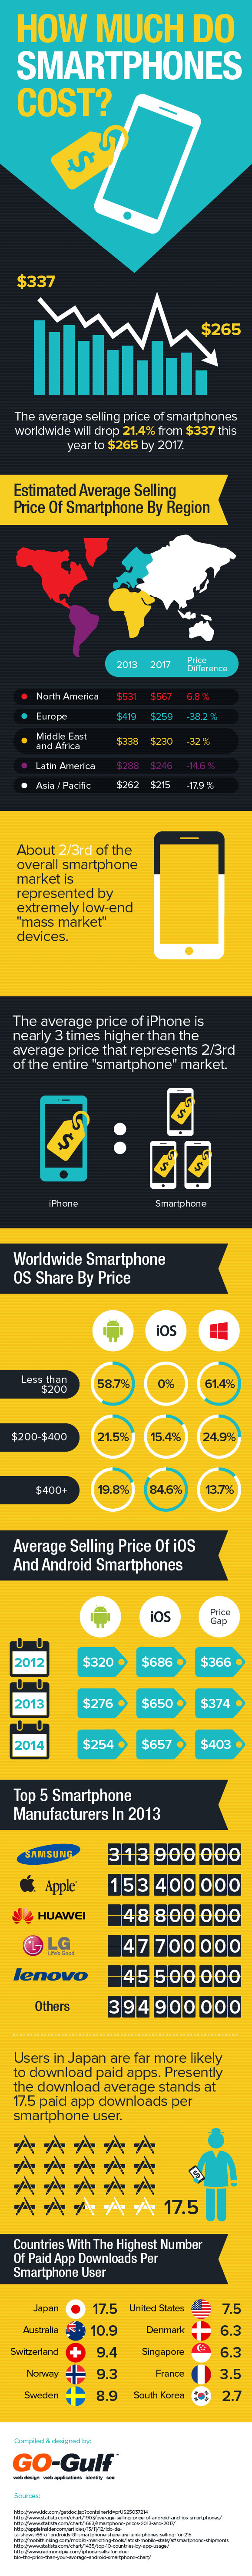 How Much Do Smartphones Cost - Statistics and Trends